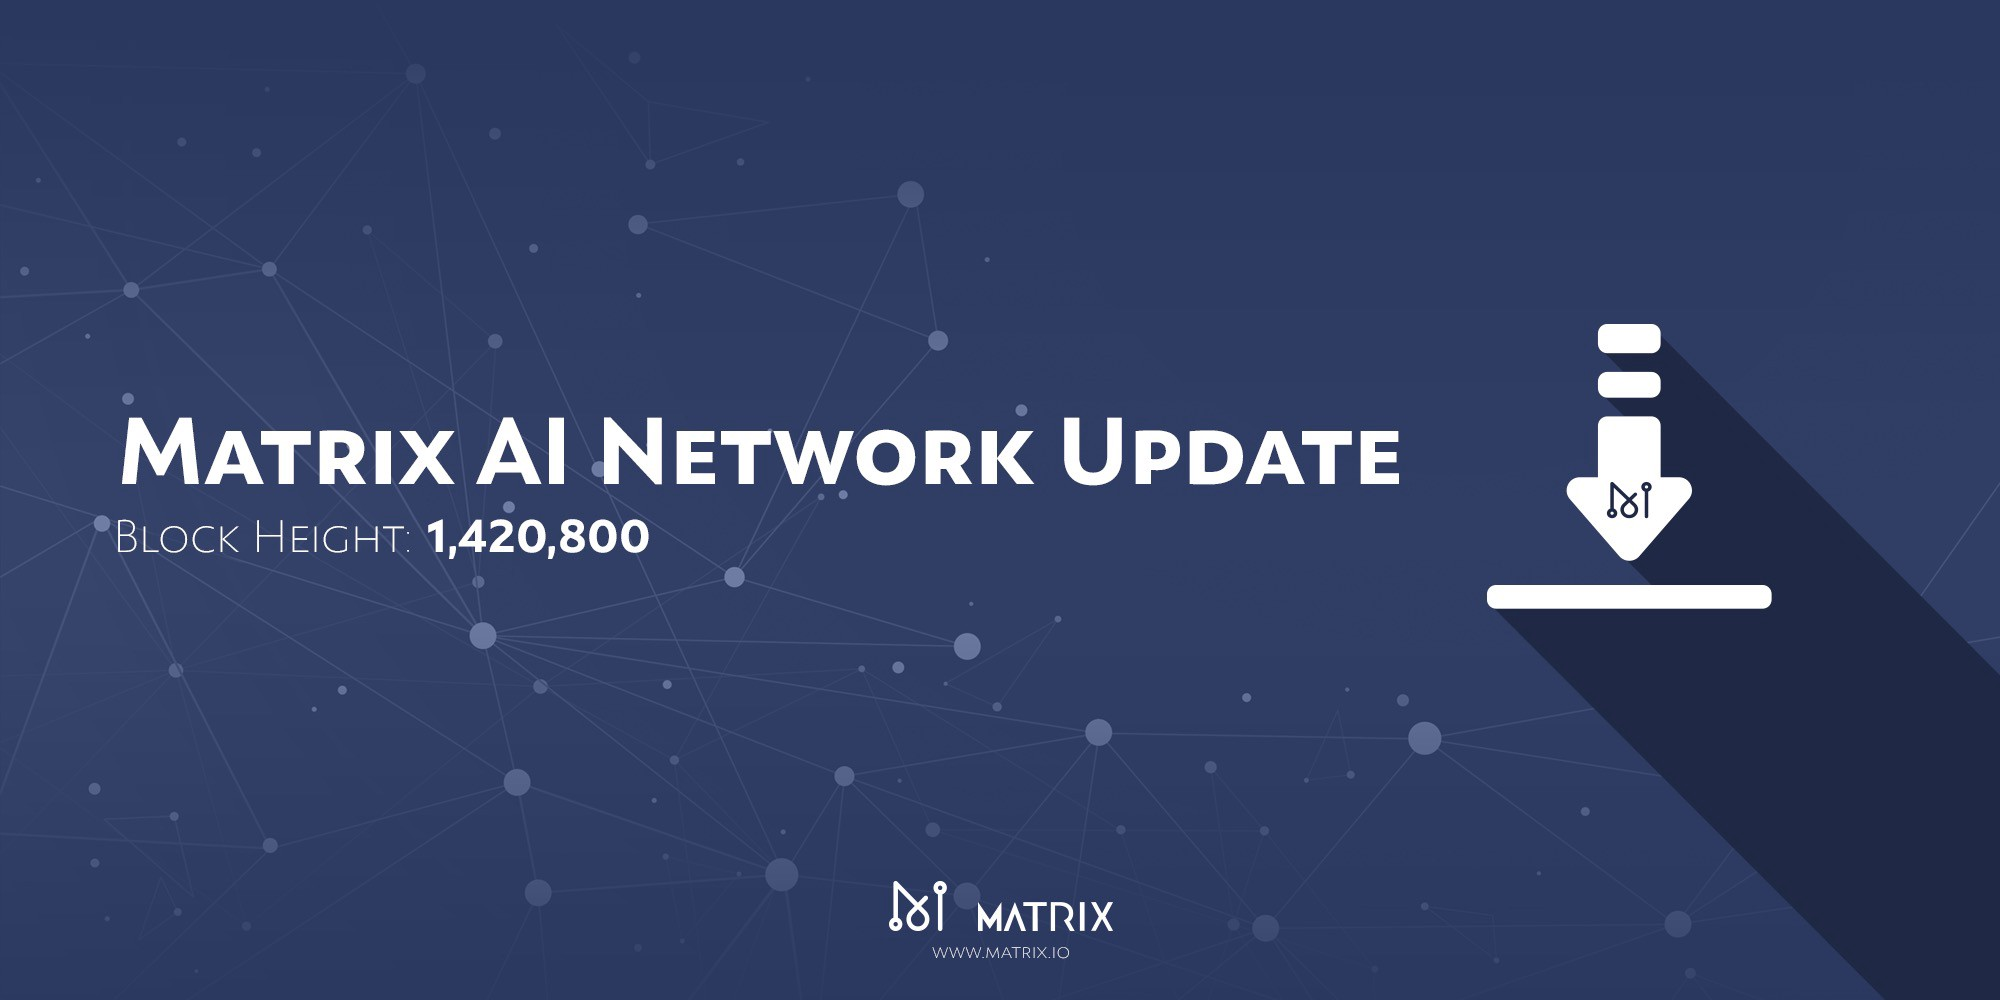 Major Update: Changes and New Features Coming to Matrix Mainnet